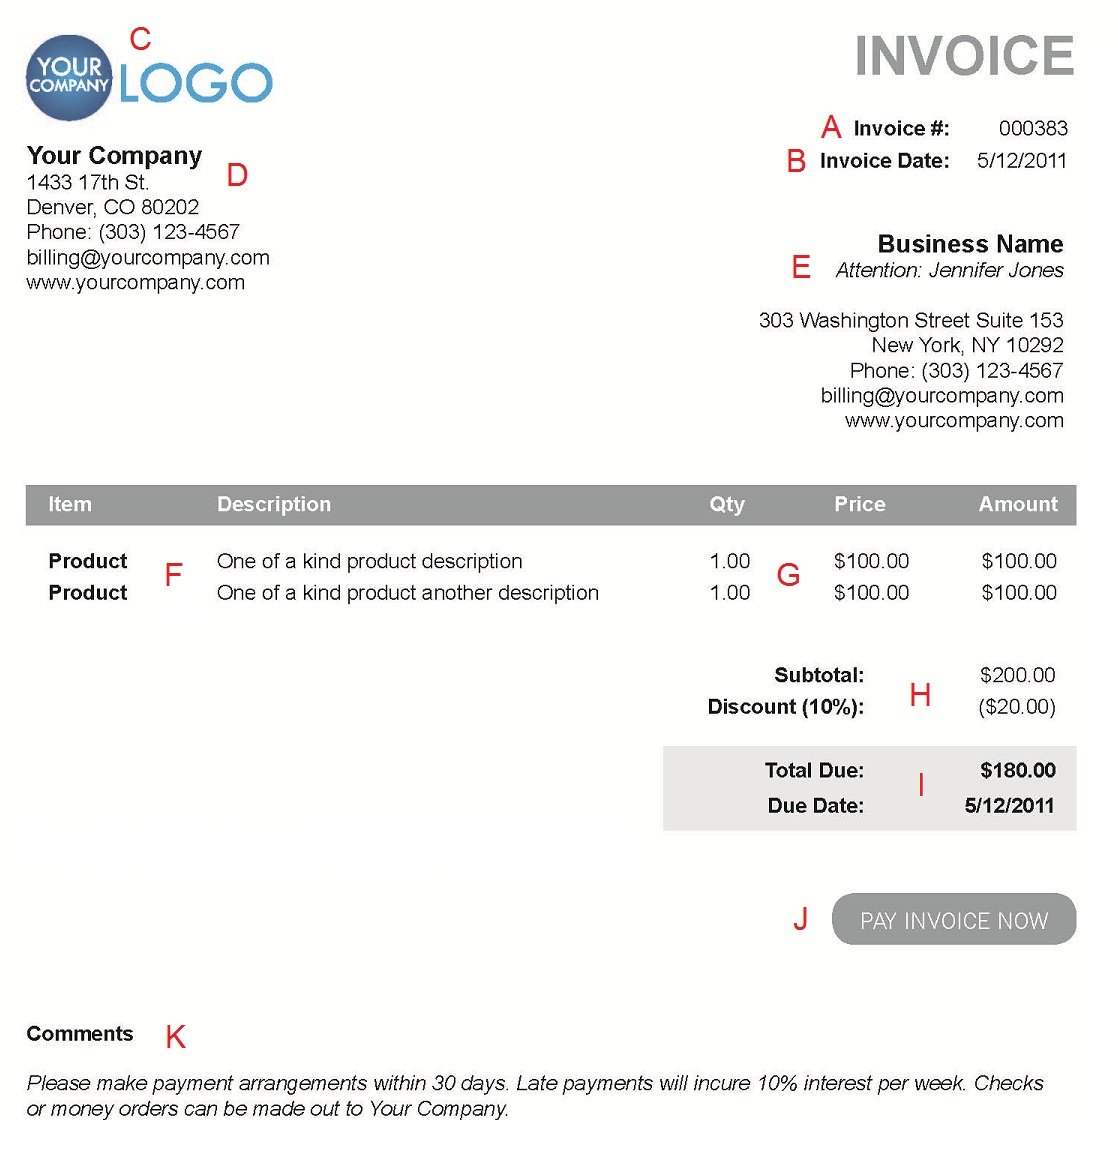 Theologygeekblogus  Pretty The  Different Sections Of An Electronic Payment Invoice With Outstanding A  With Lovely Nm Gross Receipts Also Receipt For Cheesecake In Addition Visa Receipt Number And Rental Receipt Template Word As Well As Hotel Receipt Maker Additionally Restaurant Receipt Book From Paysimplecom With Theologygeekblogus  Outstanding The  Different Sections Of An Electronic Payment Invoice With Lovely A  And Pretty Nm Gross Receipts Also Receipt For Cheesecake In Addition Visa Receipt Number From Paysimplecom